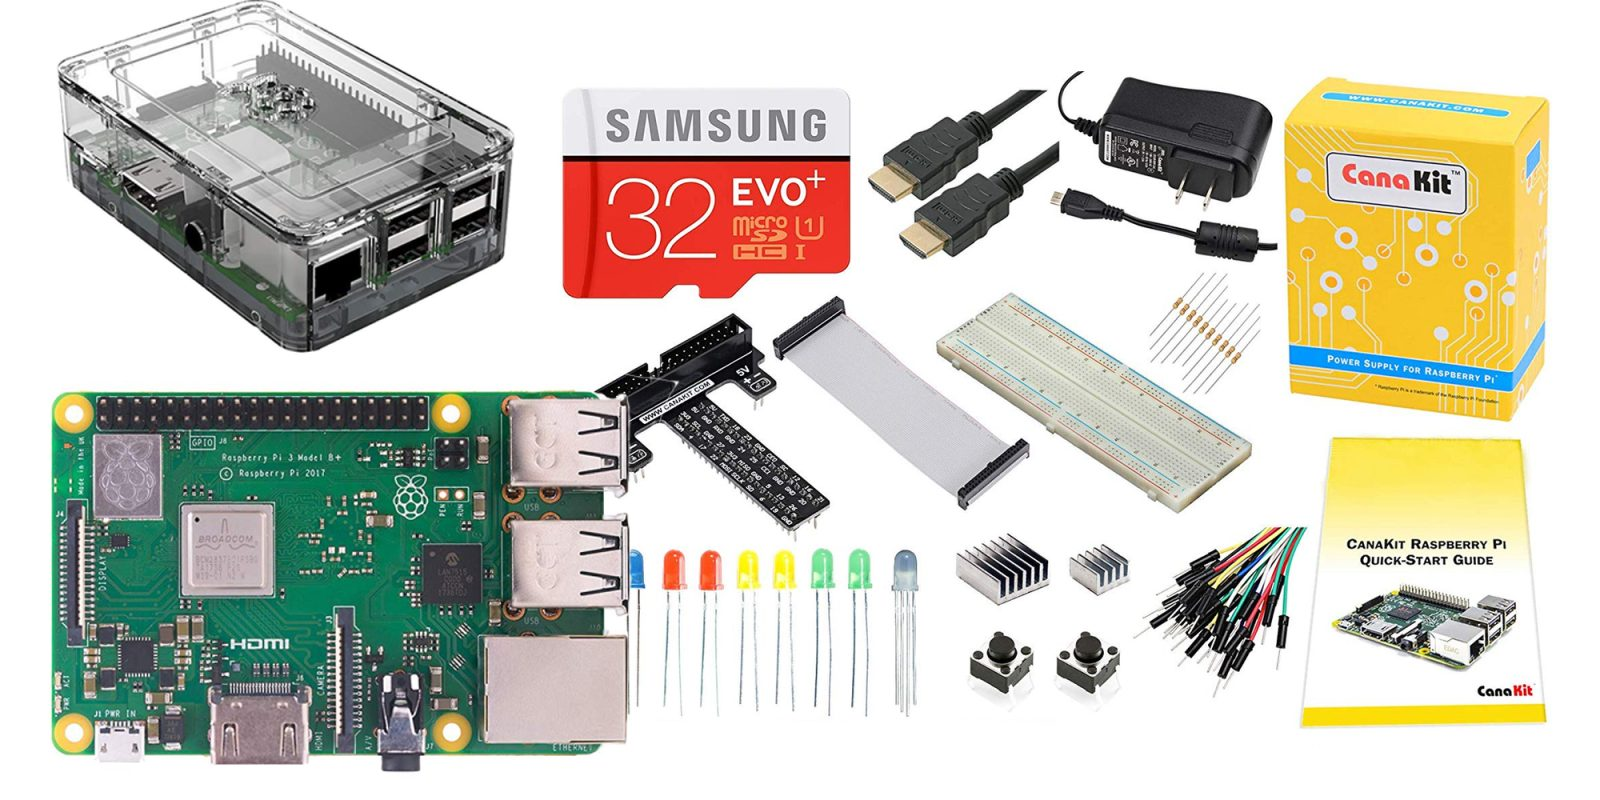 Save $20 on CanaKit's Ultimate + Gaming Raspberry Pi Starter Kits at $70 Prime shipped